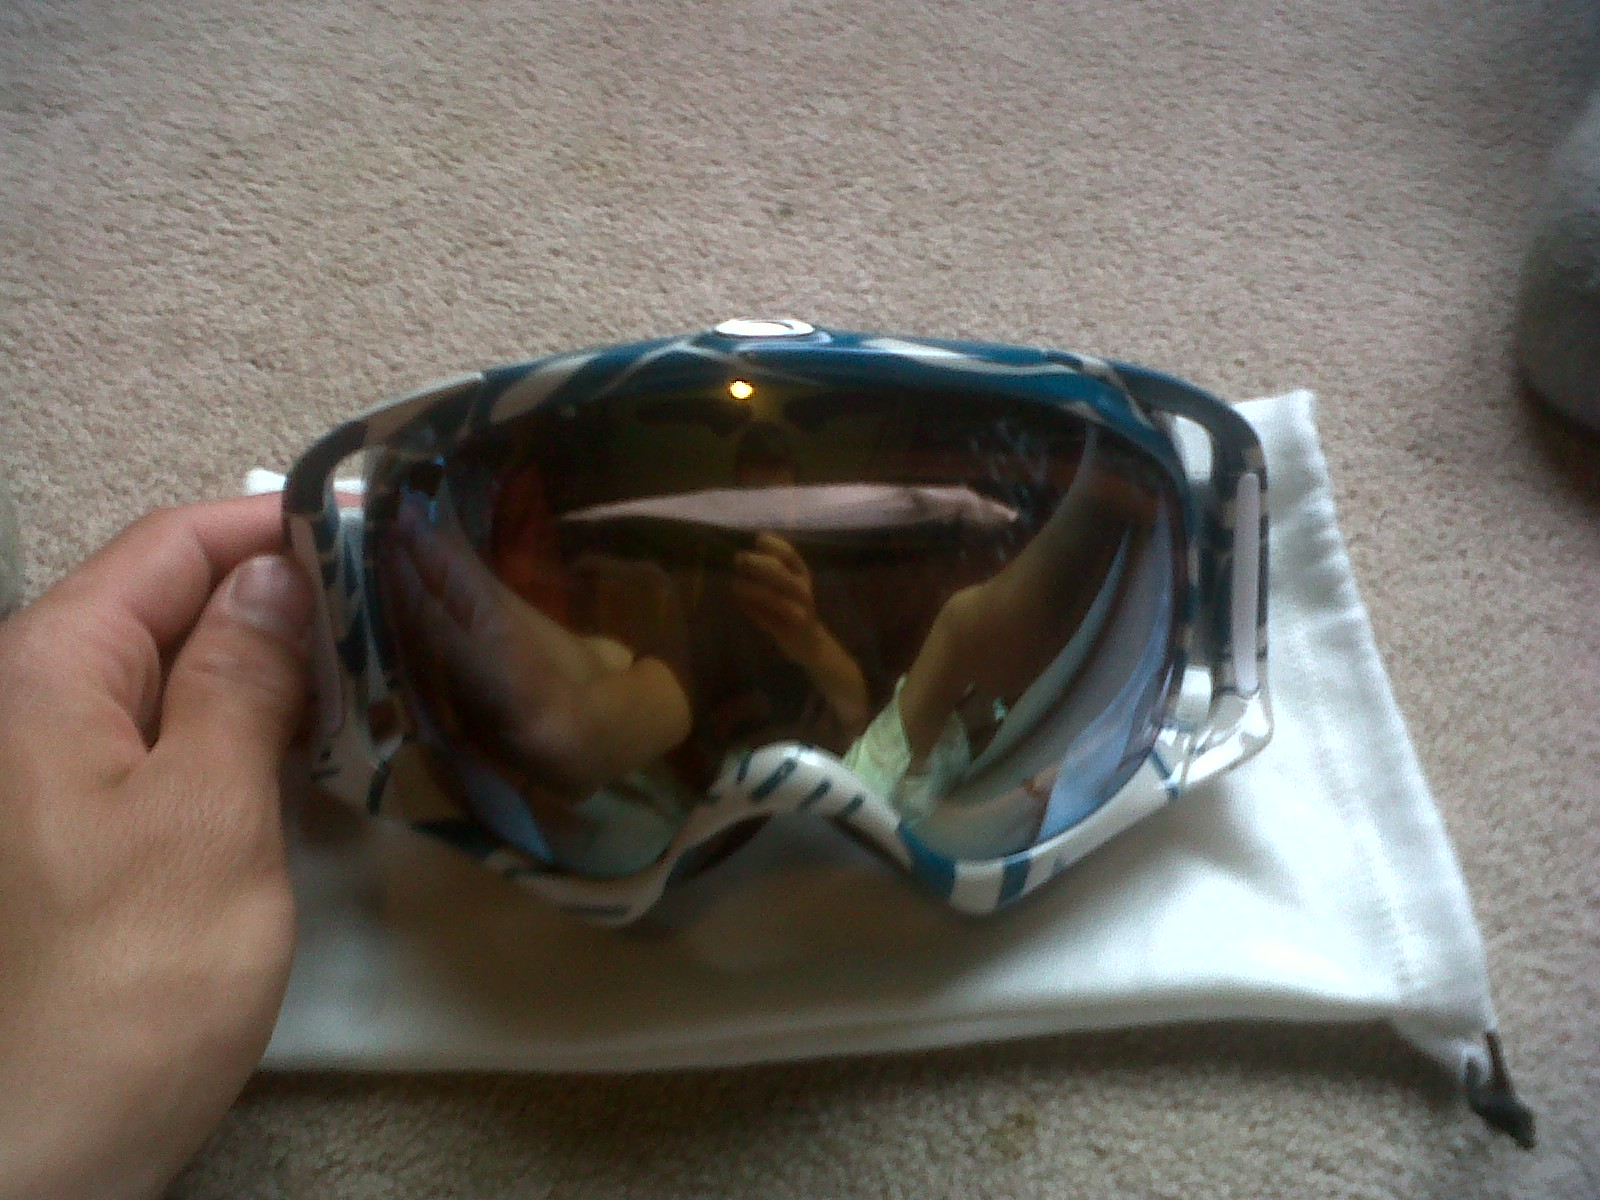 Oakley crowbars for sale, check thread